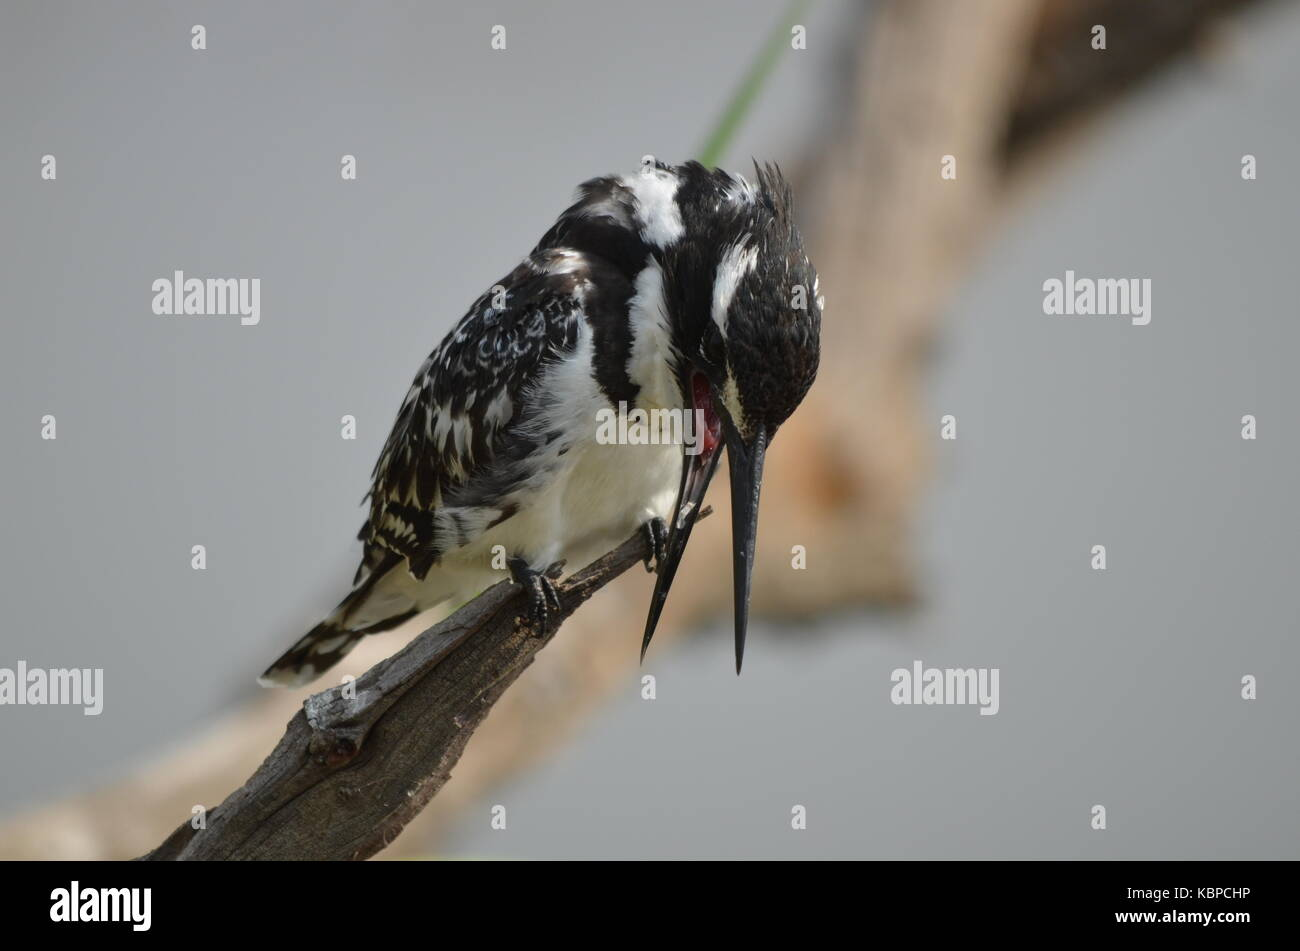 Pied Kingfisher (Ceryle rudis) perched on a branch in Pilanesberg - South Africa - Stock Image